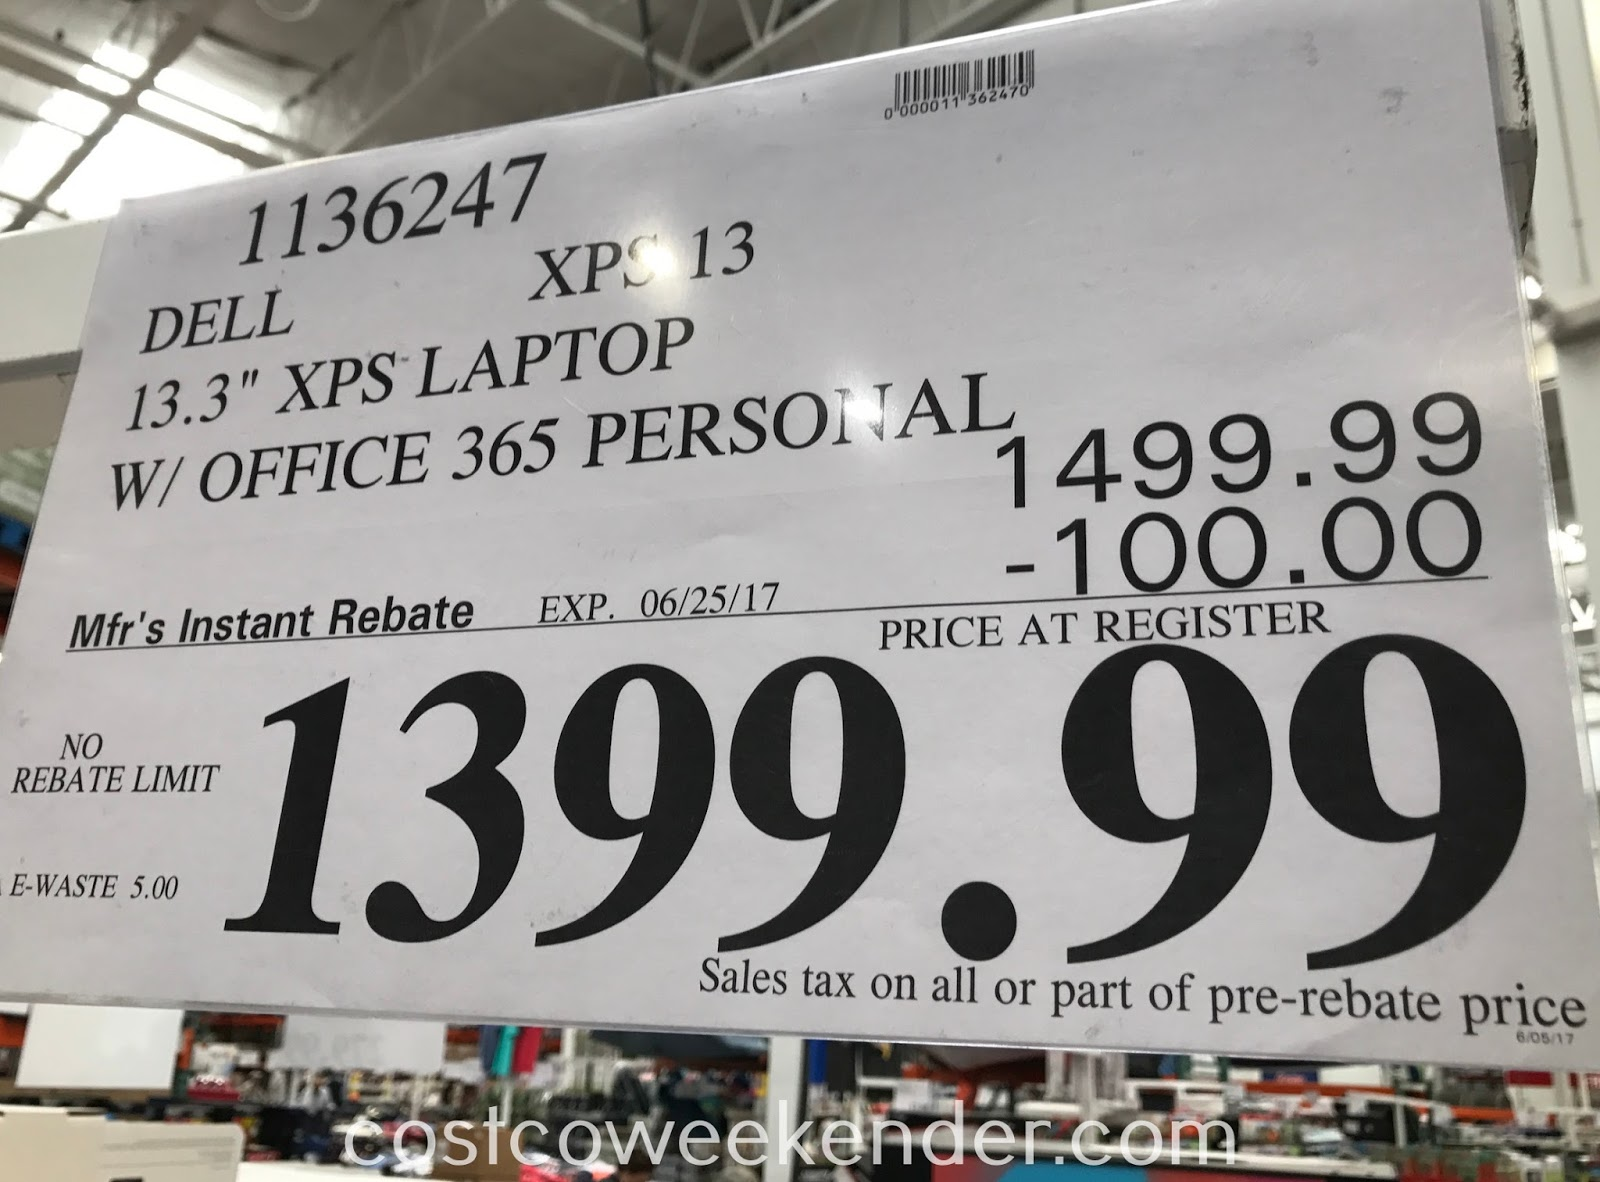 Deal for the Dell XPS 13 Laptop with Office 365 Personal at Costco